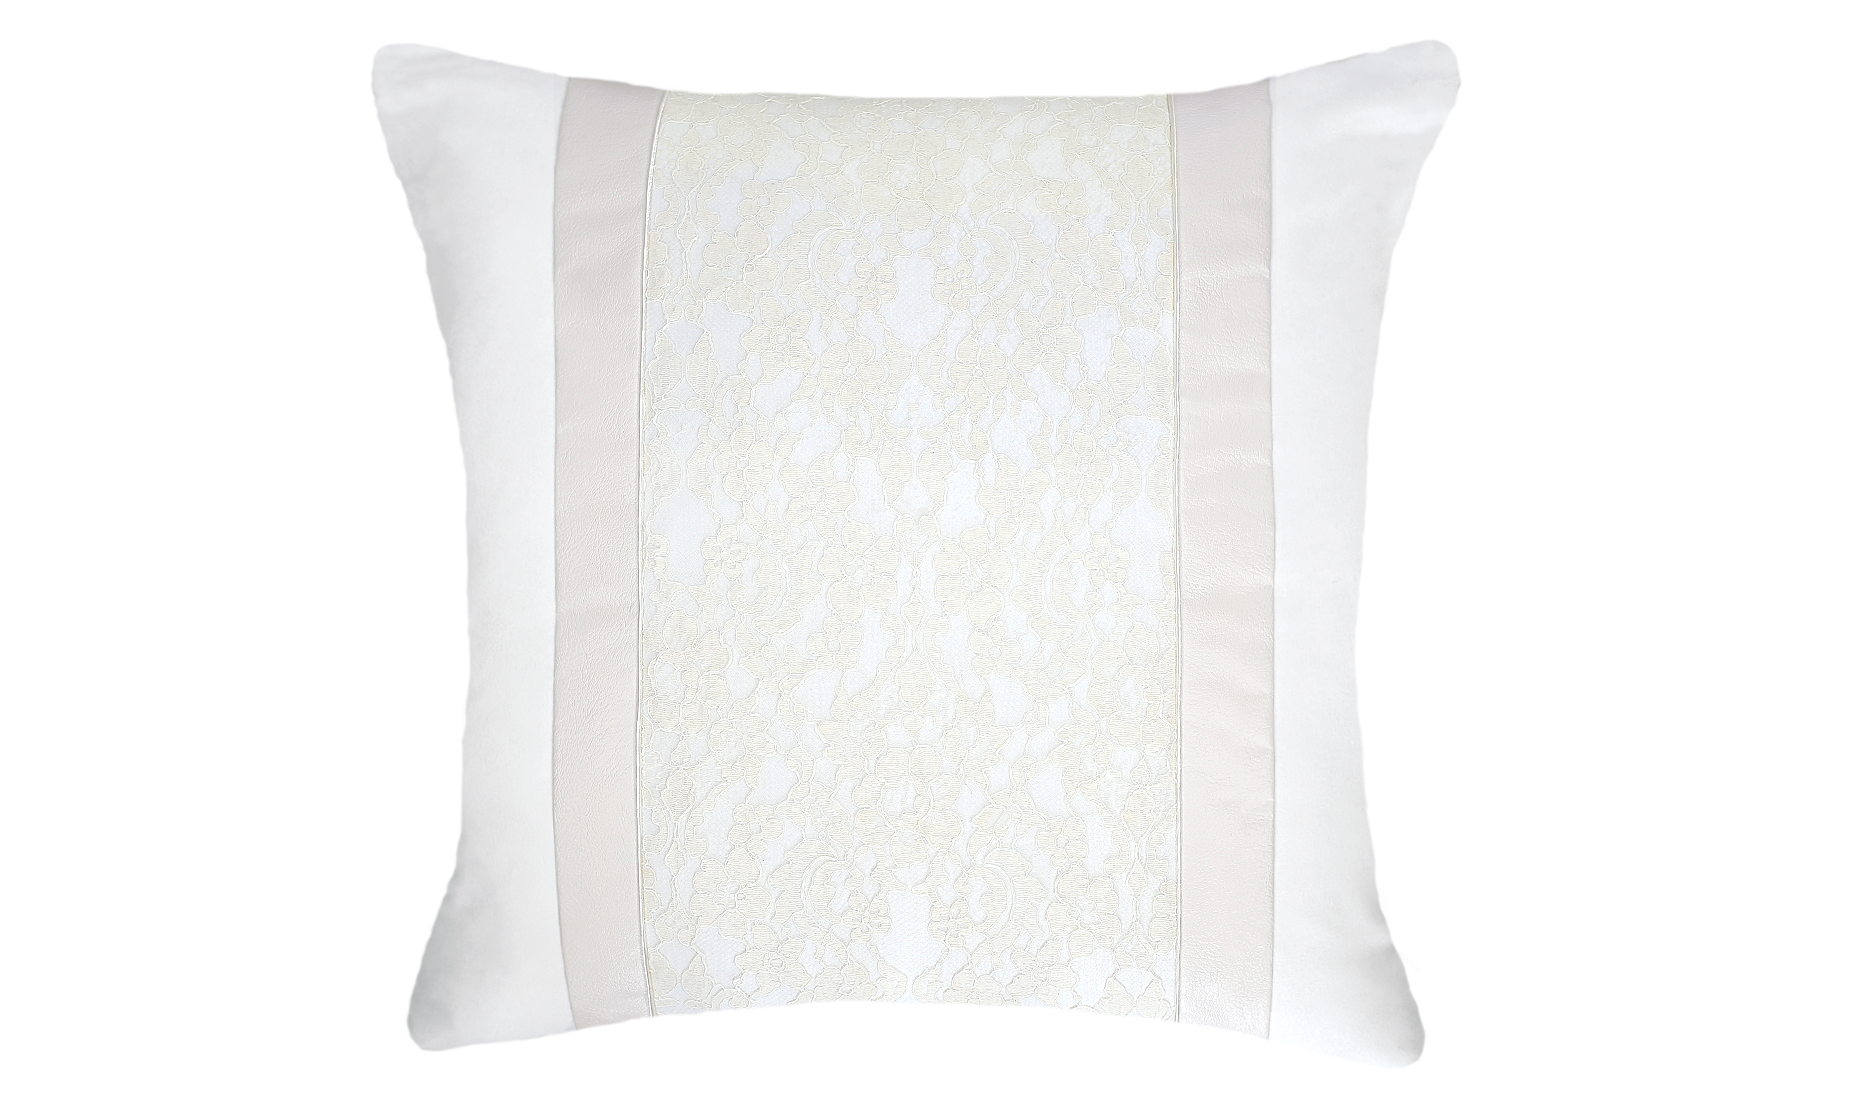 Snow White Lace Throw Pillow Cover